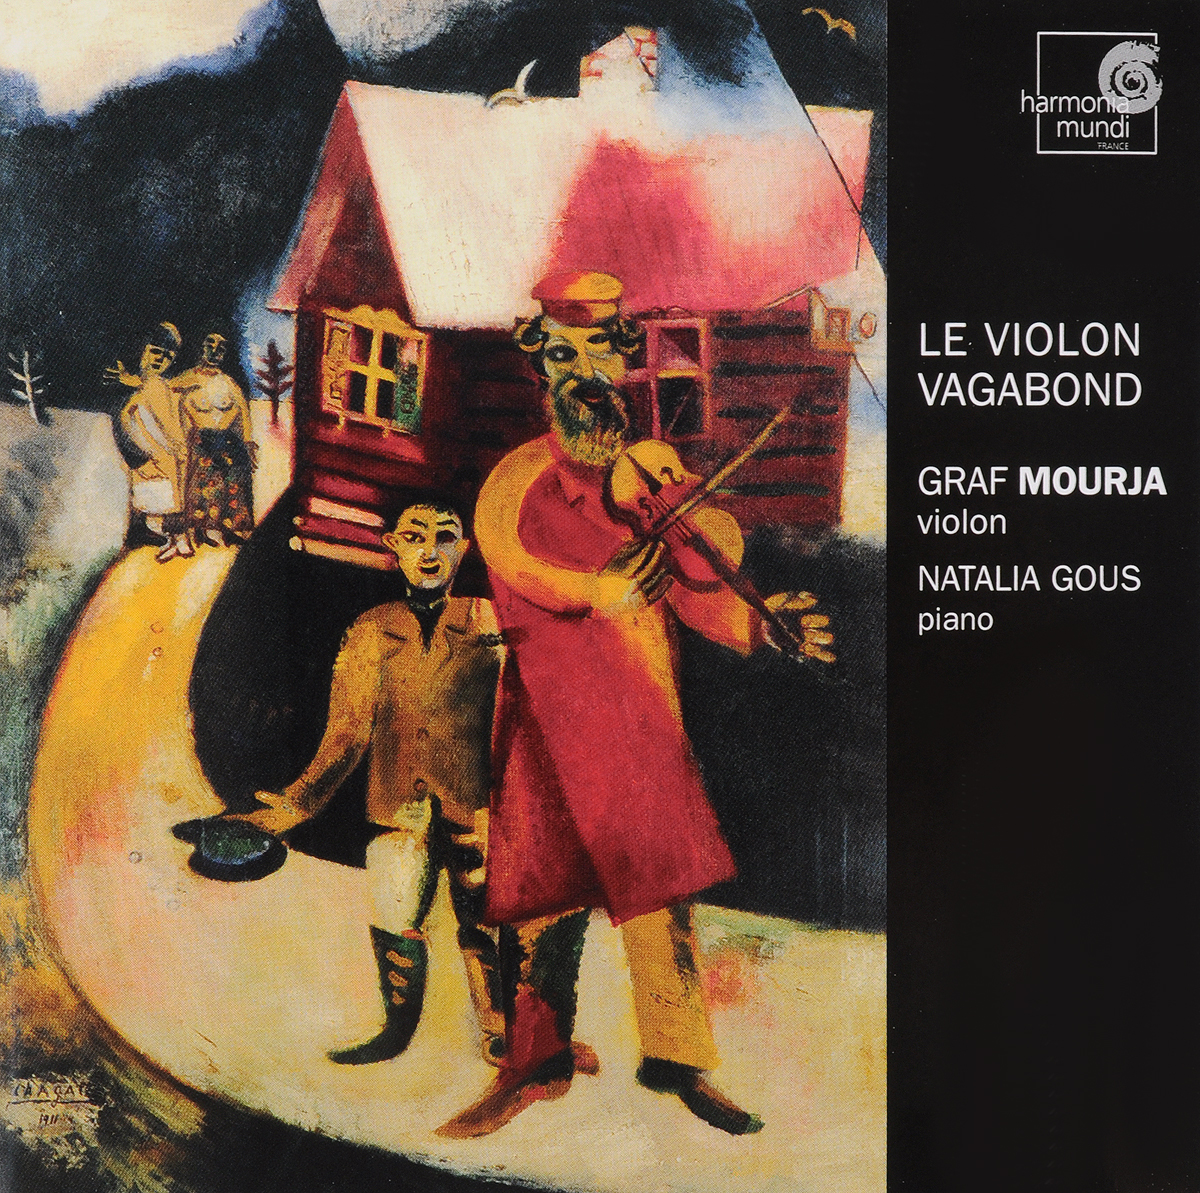 VARIOUS. THE VAGABOND VIOLIN/MOURJA, ./GOUS, .. 1